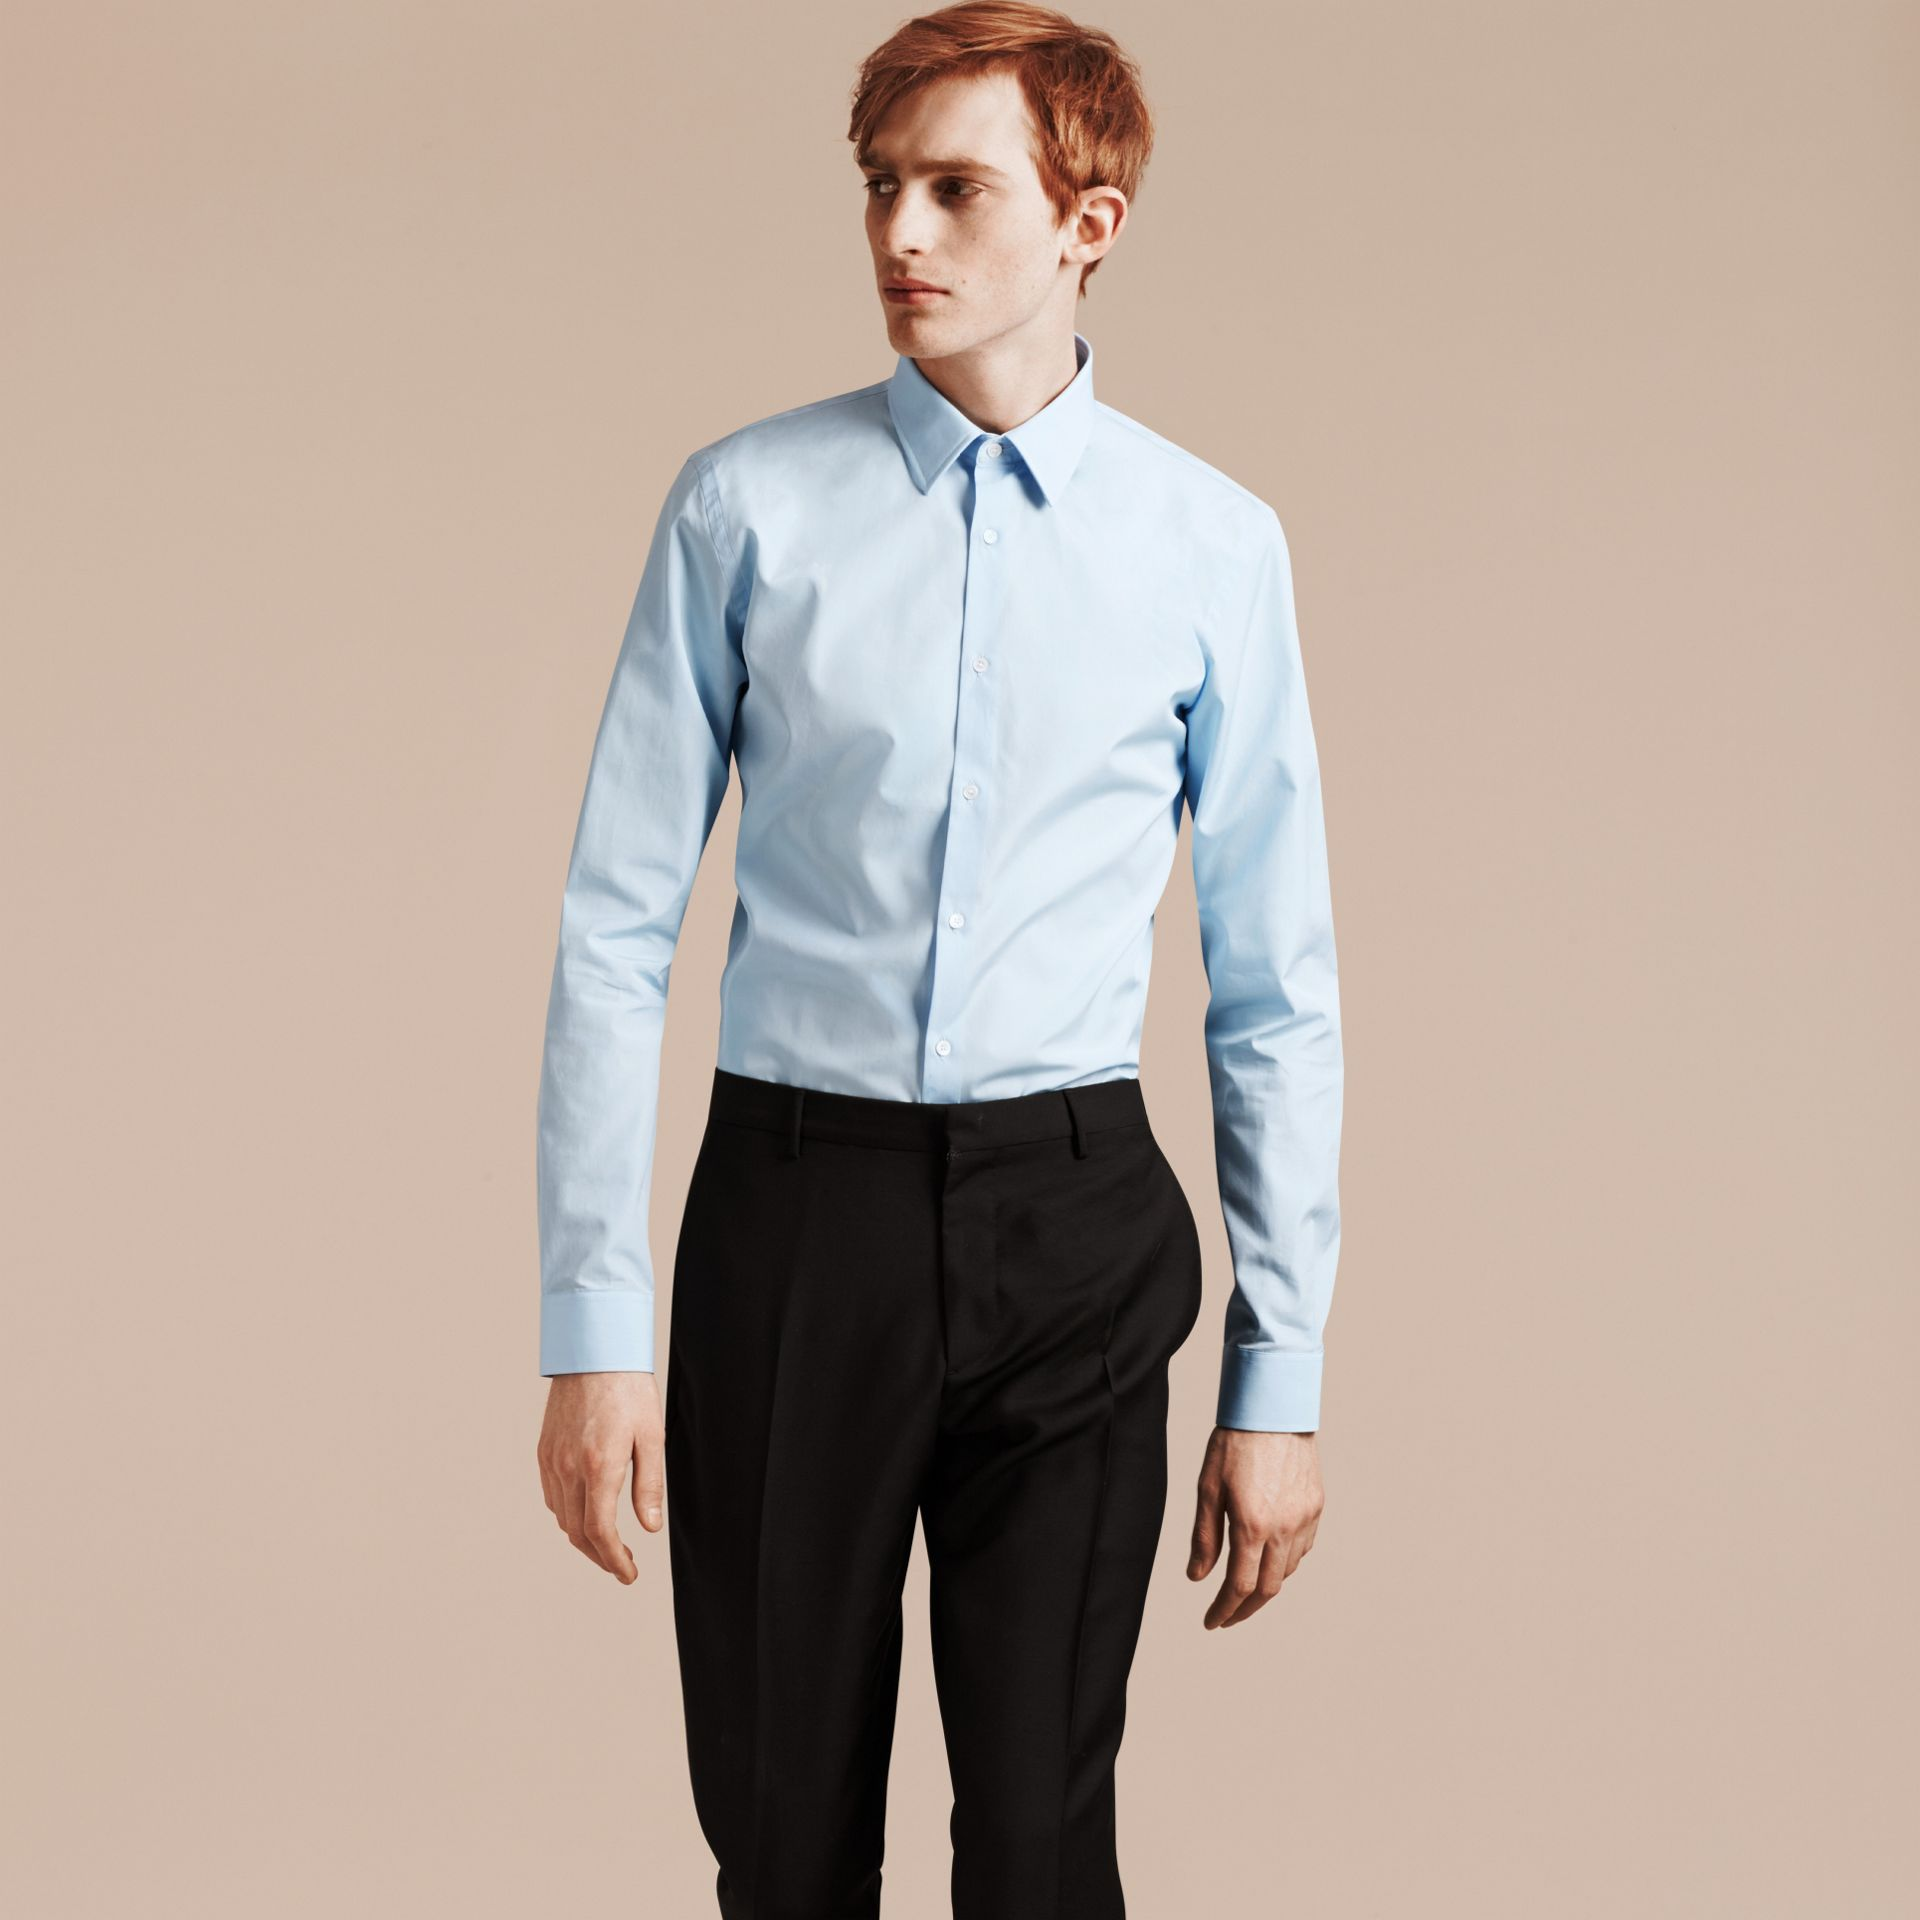 Slim Fit Cotton Poplin Shirt in City Blue - Men | Burberry - gallery image 6